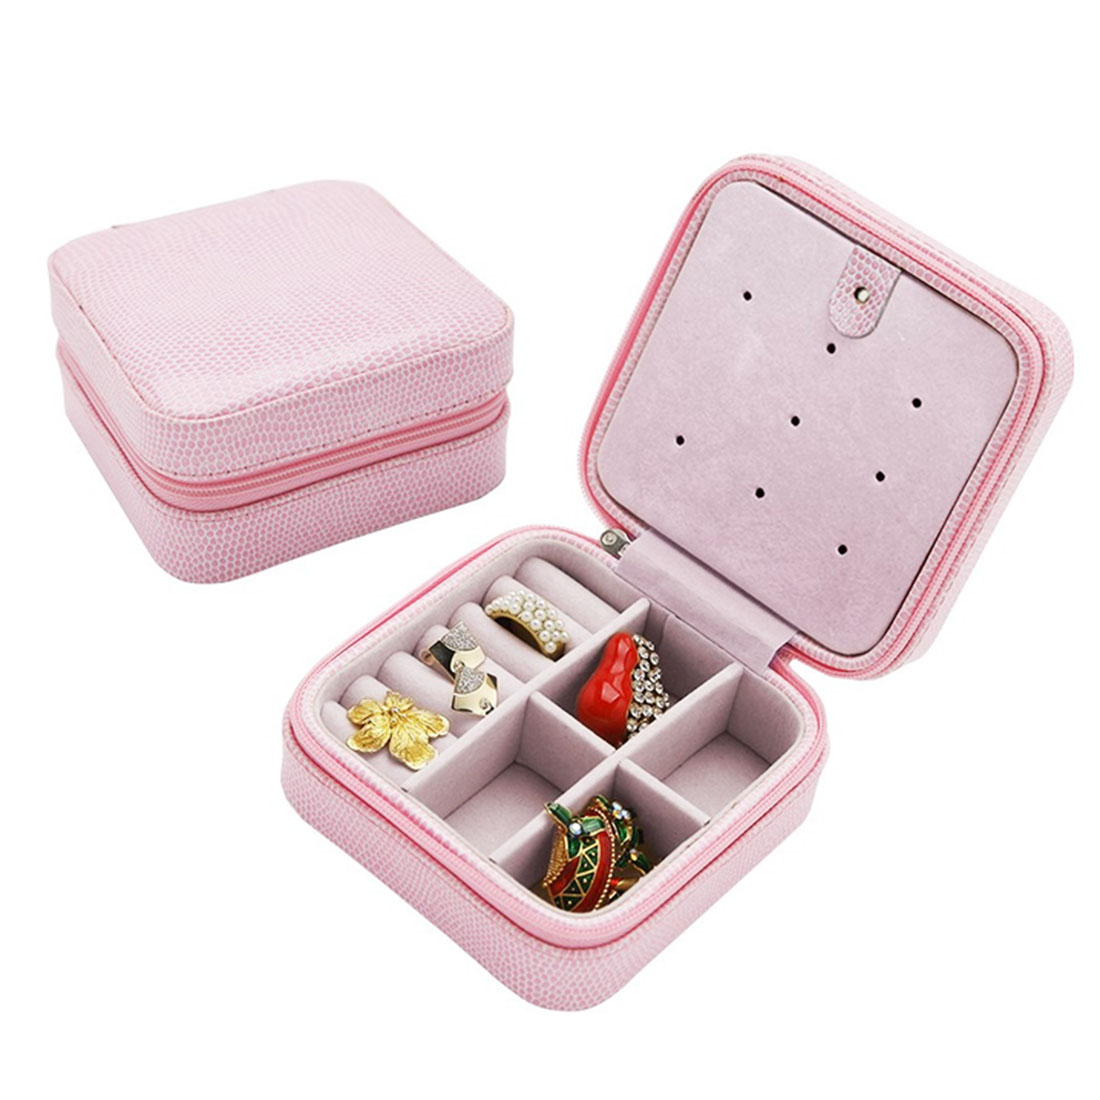 Portable PU Leather Travel Jewelry Organizer Storage Box Case Pink